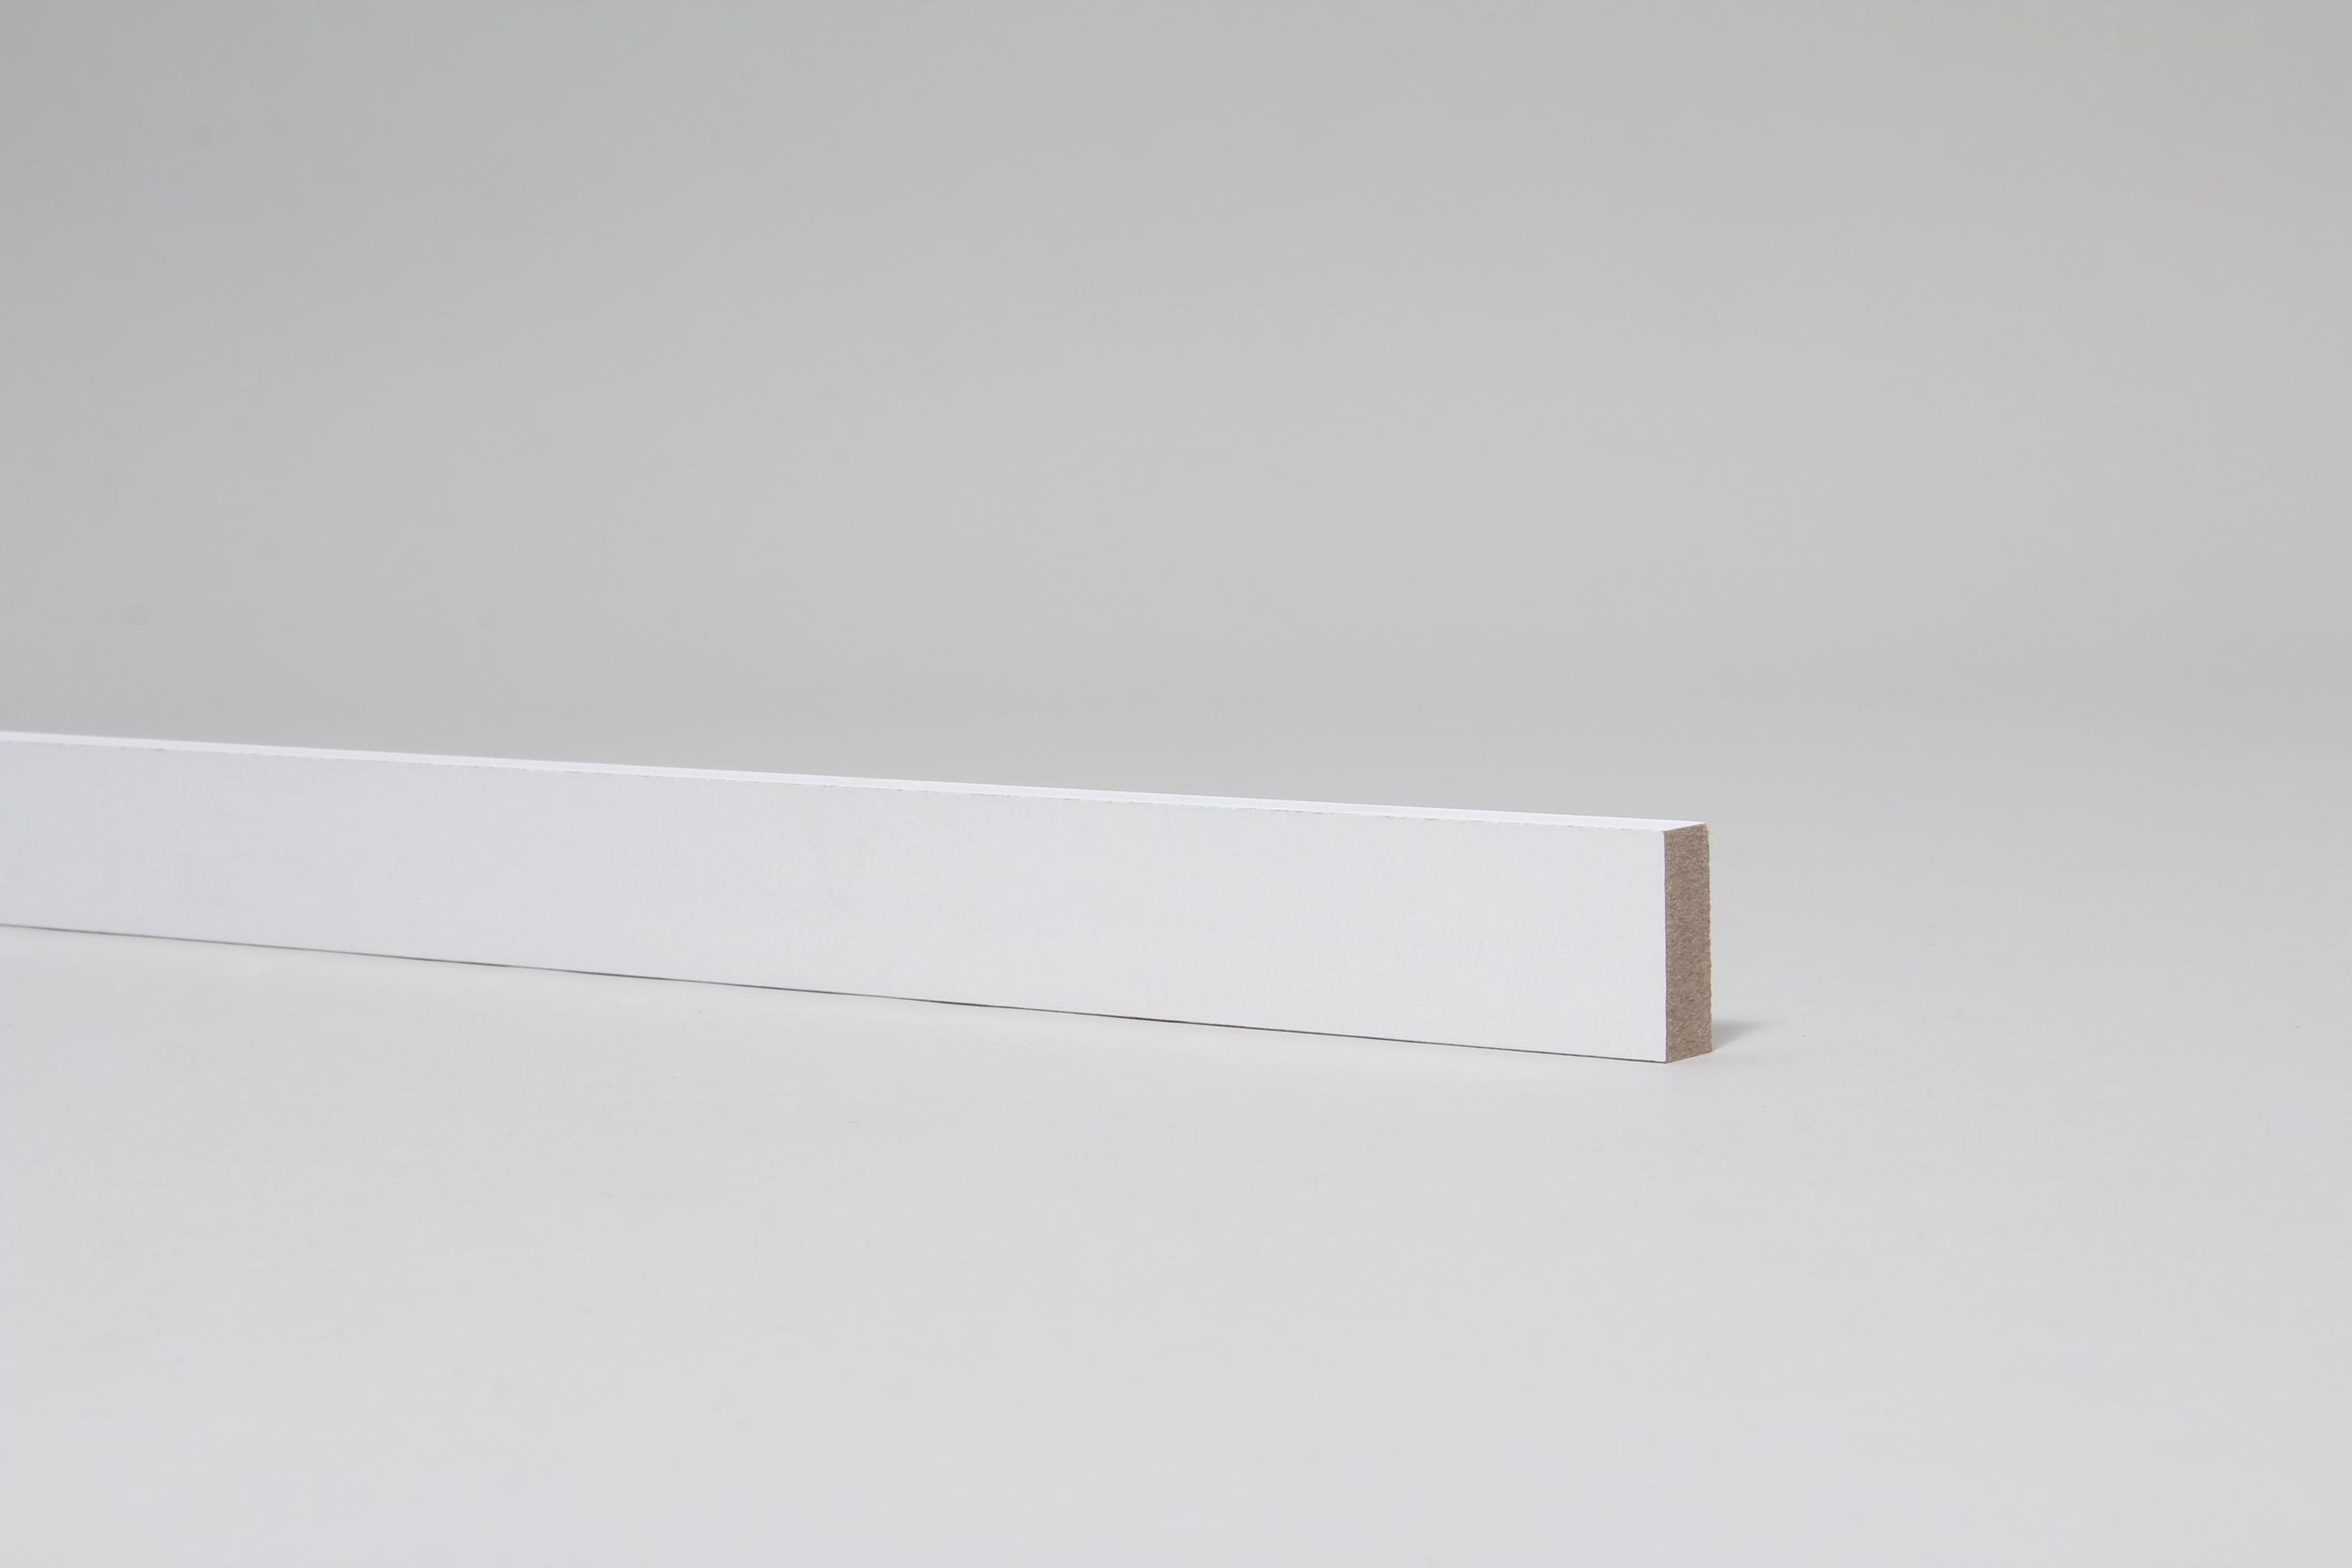 Plain Square Edge 12mm x 32mm x 4.4 Mtr Primed